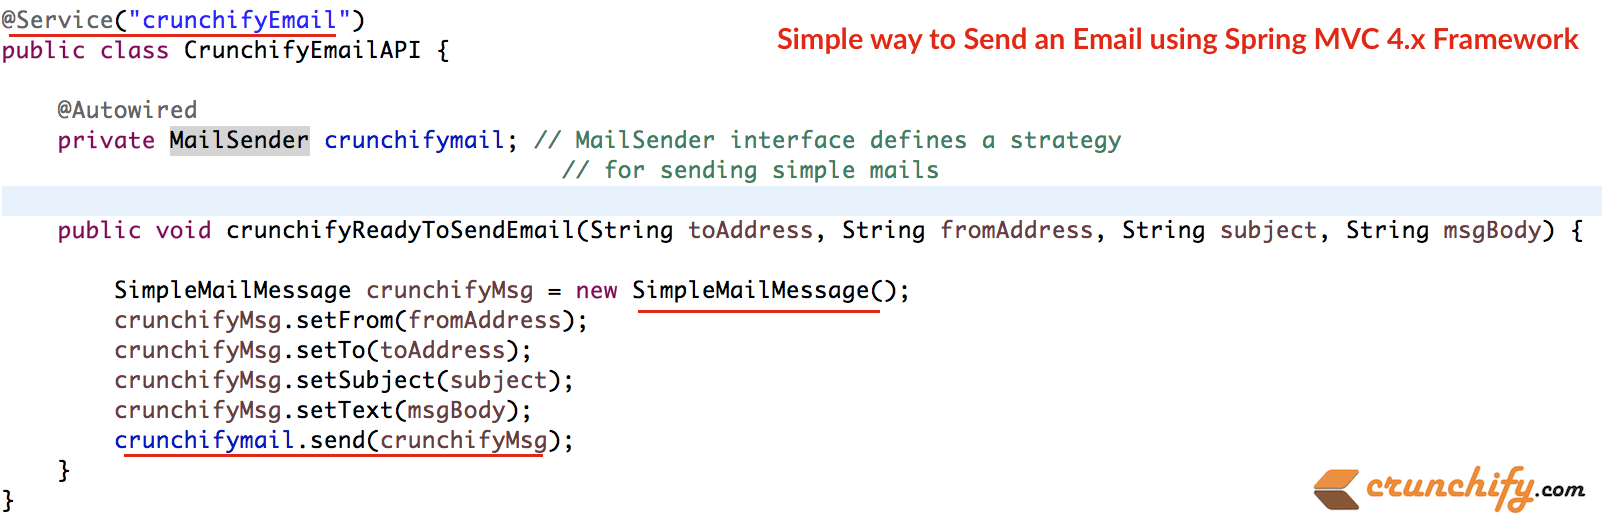 simple-way-to-send-an-email-using-spring-mvc-4-x-framework